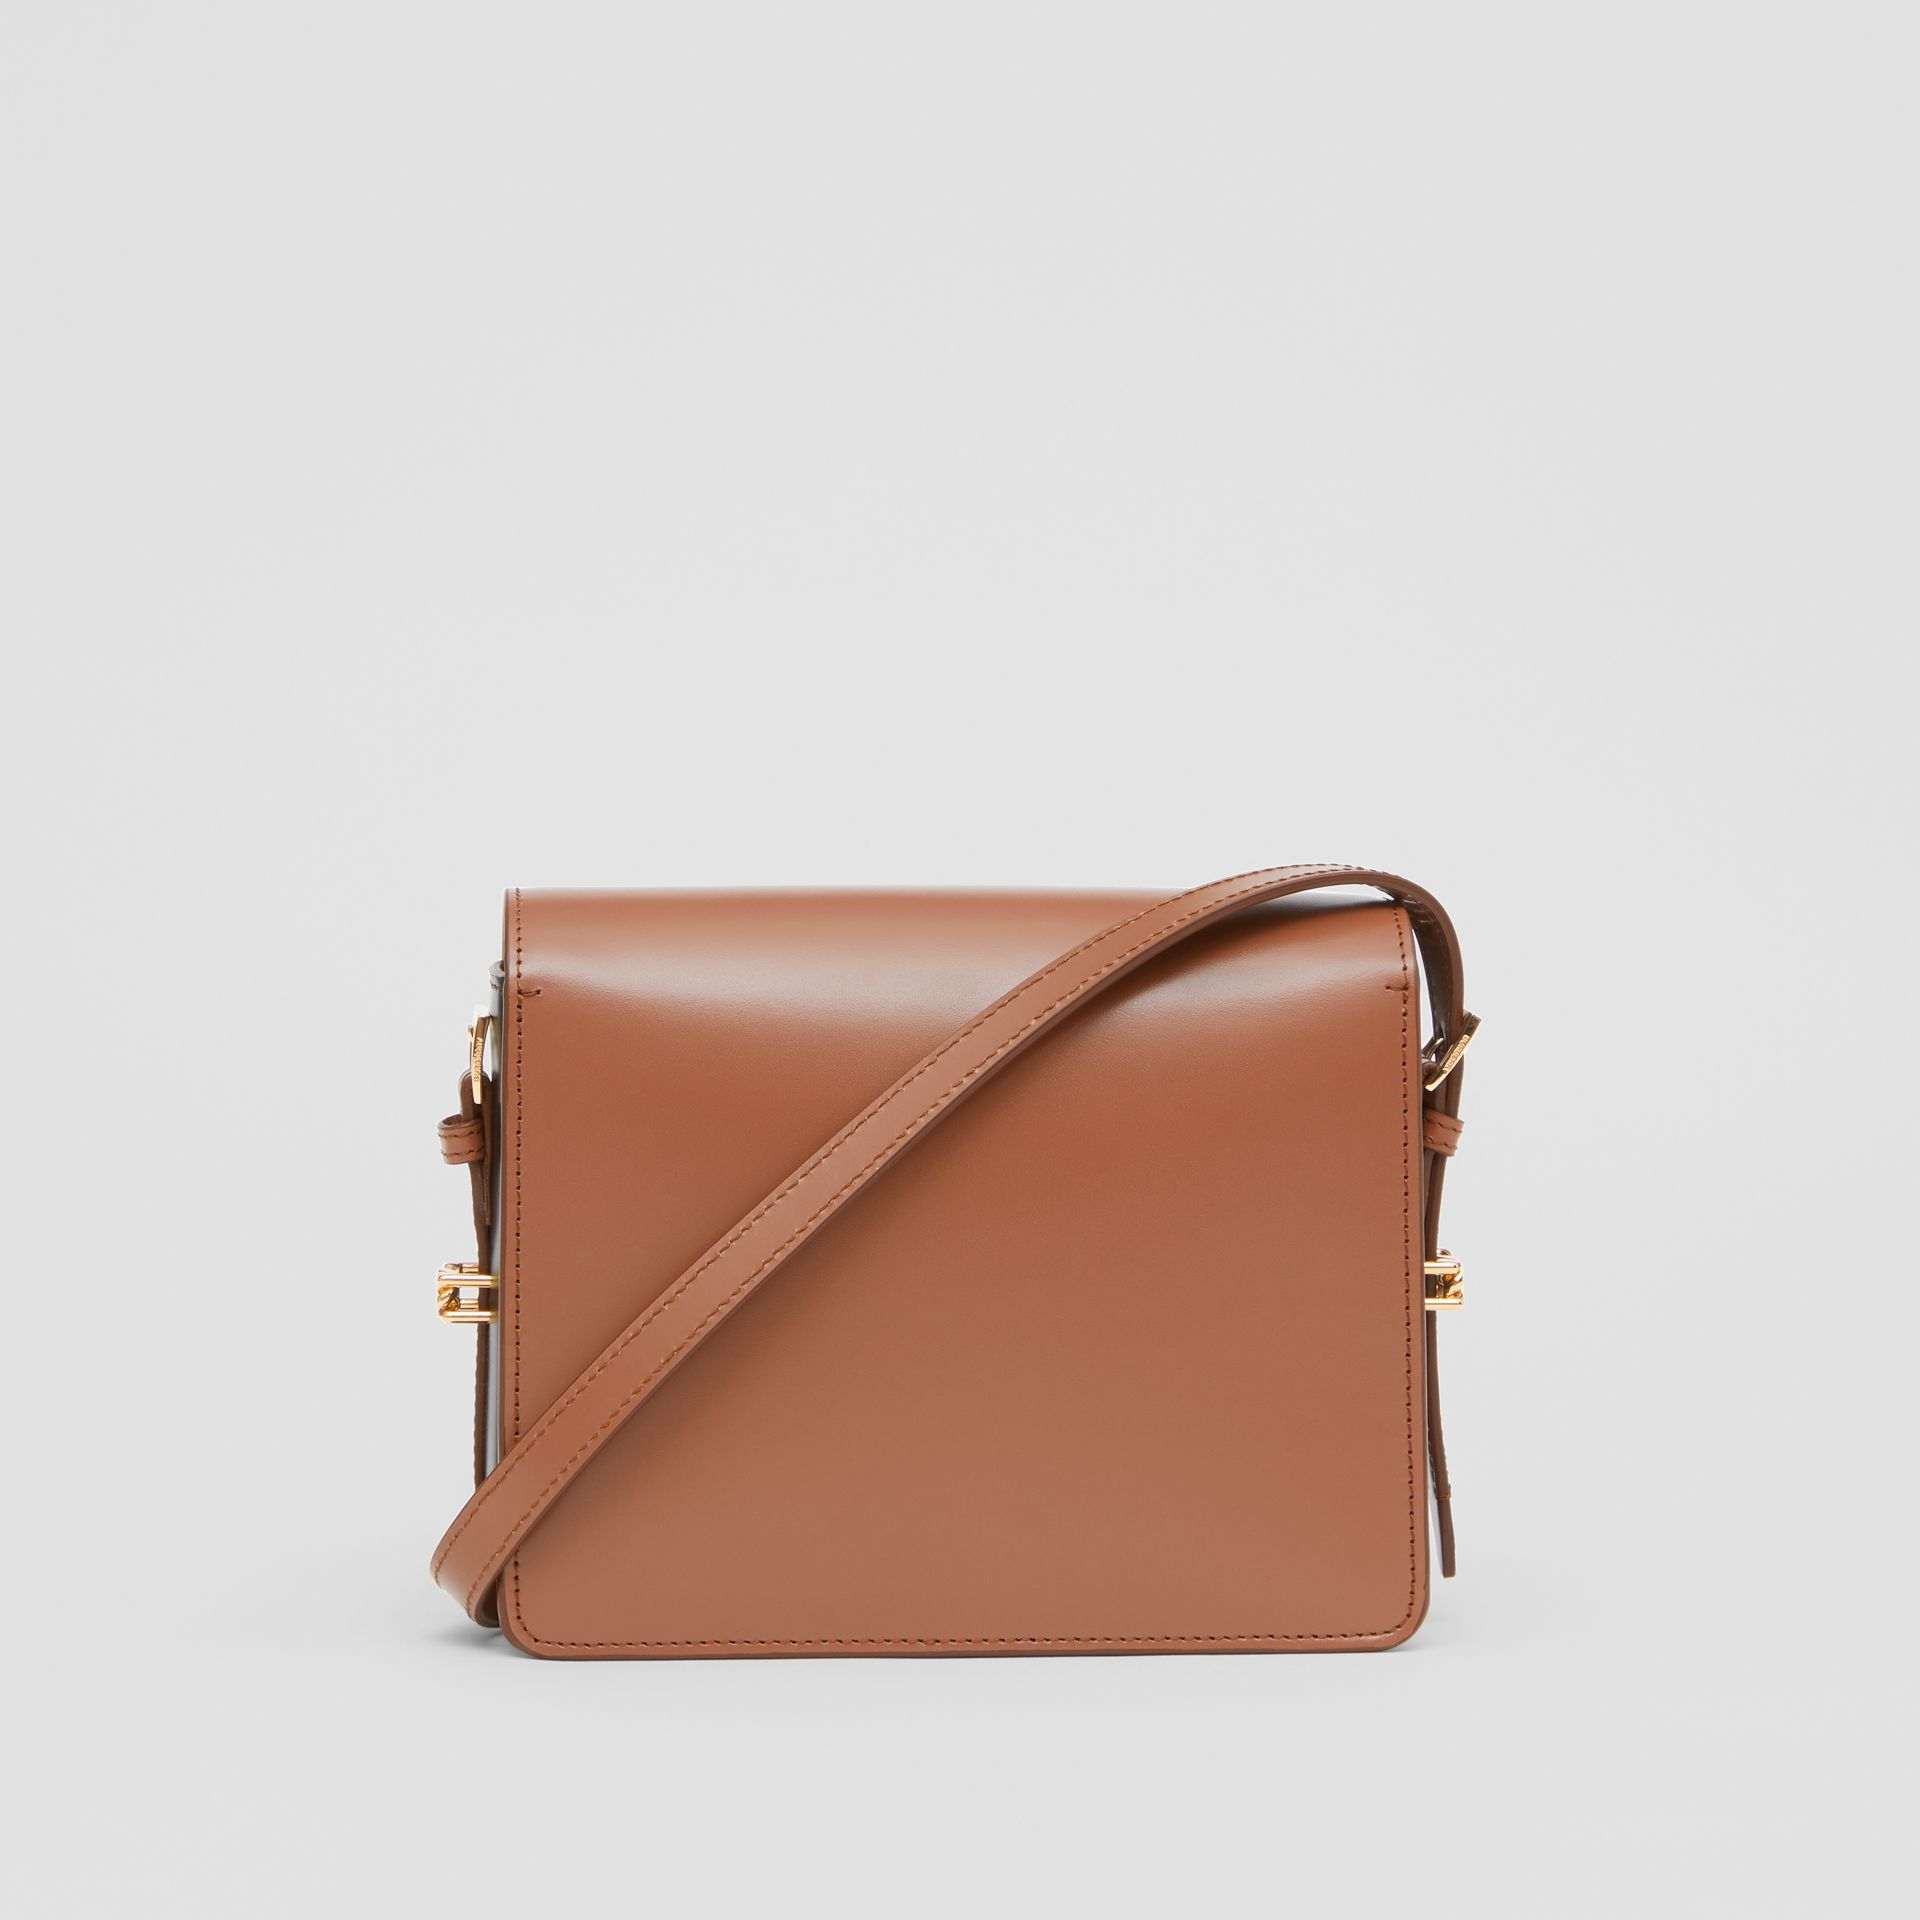 Small Two-tone Leather Grace Bag in Malt Brown/black - Women | Burberry United States - gallery image 7